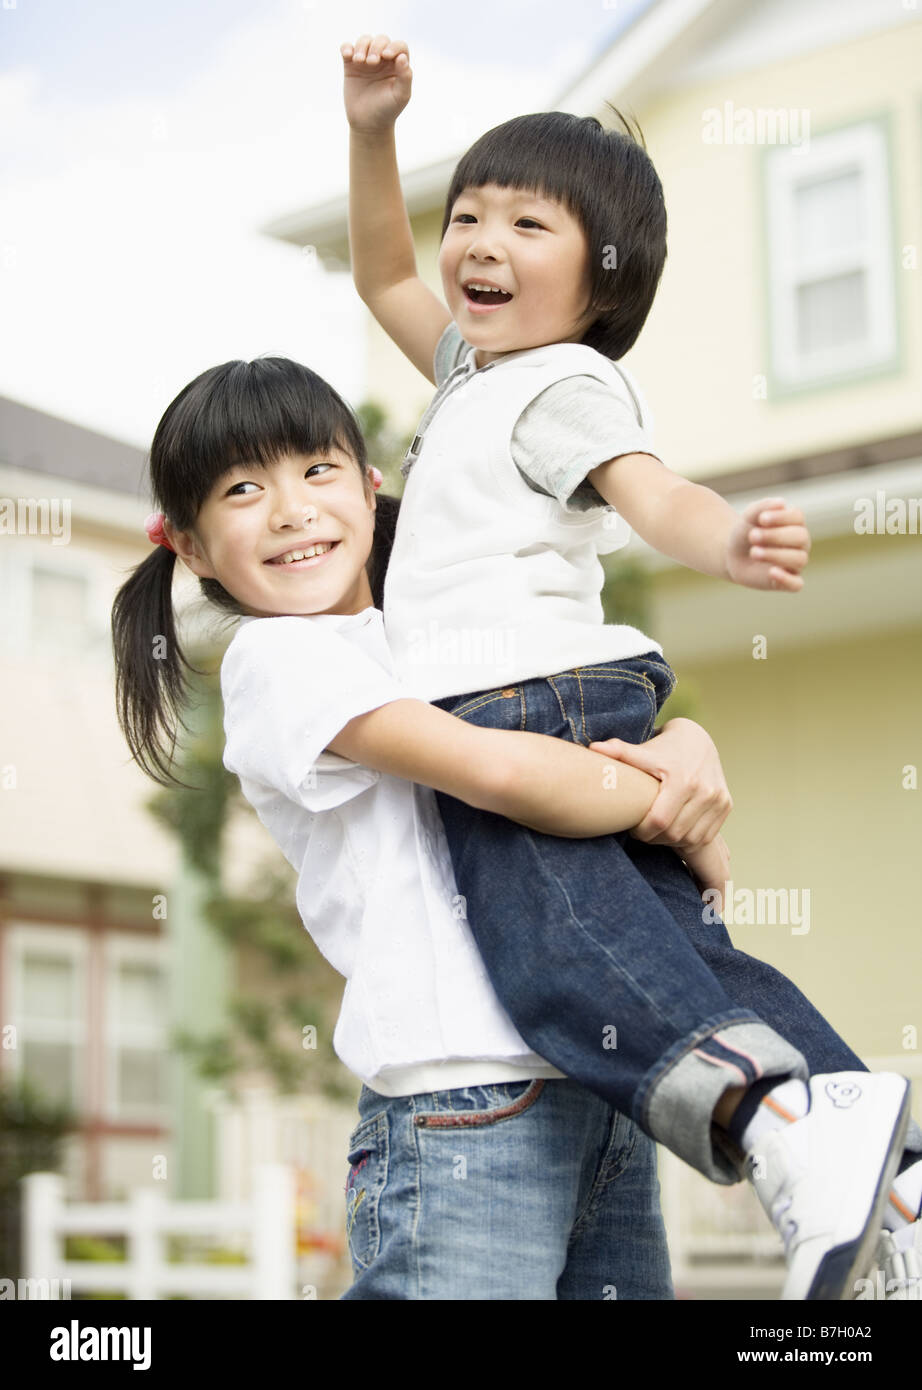 Sister lifting up younger brother - Stock Image